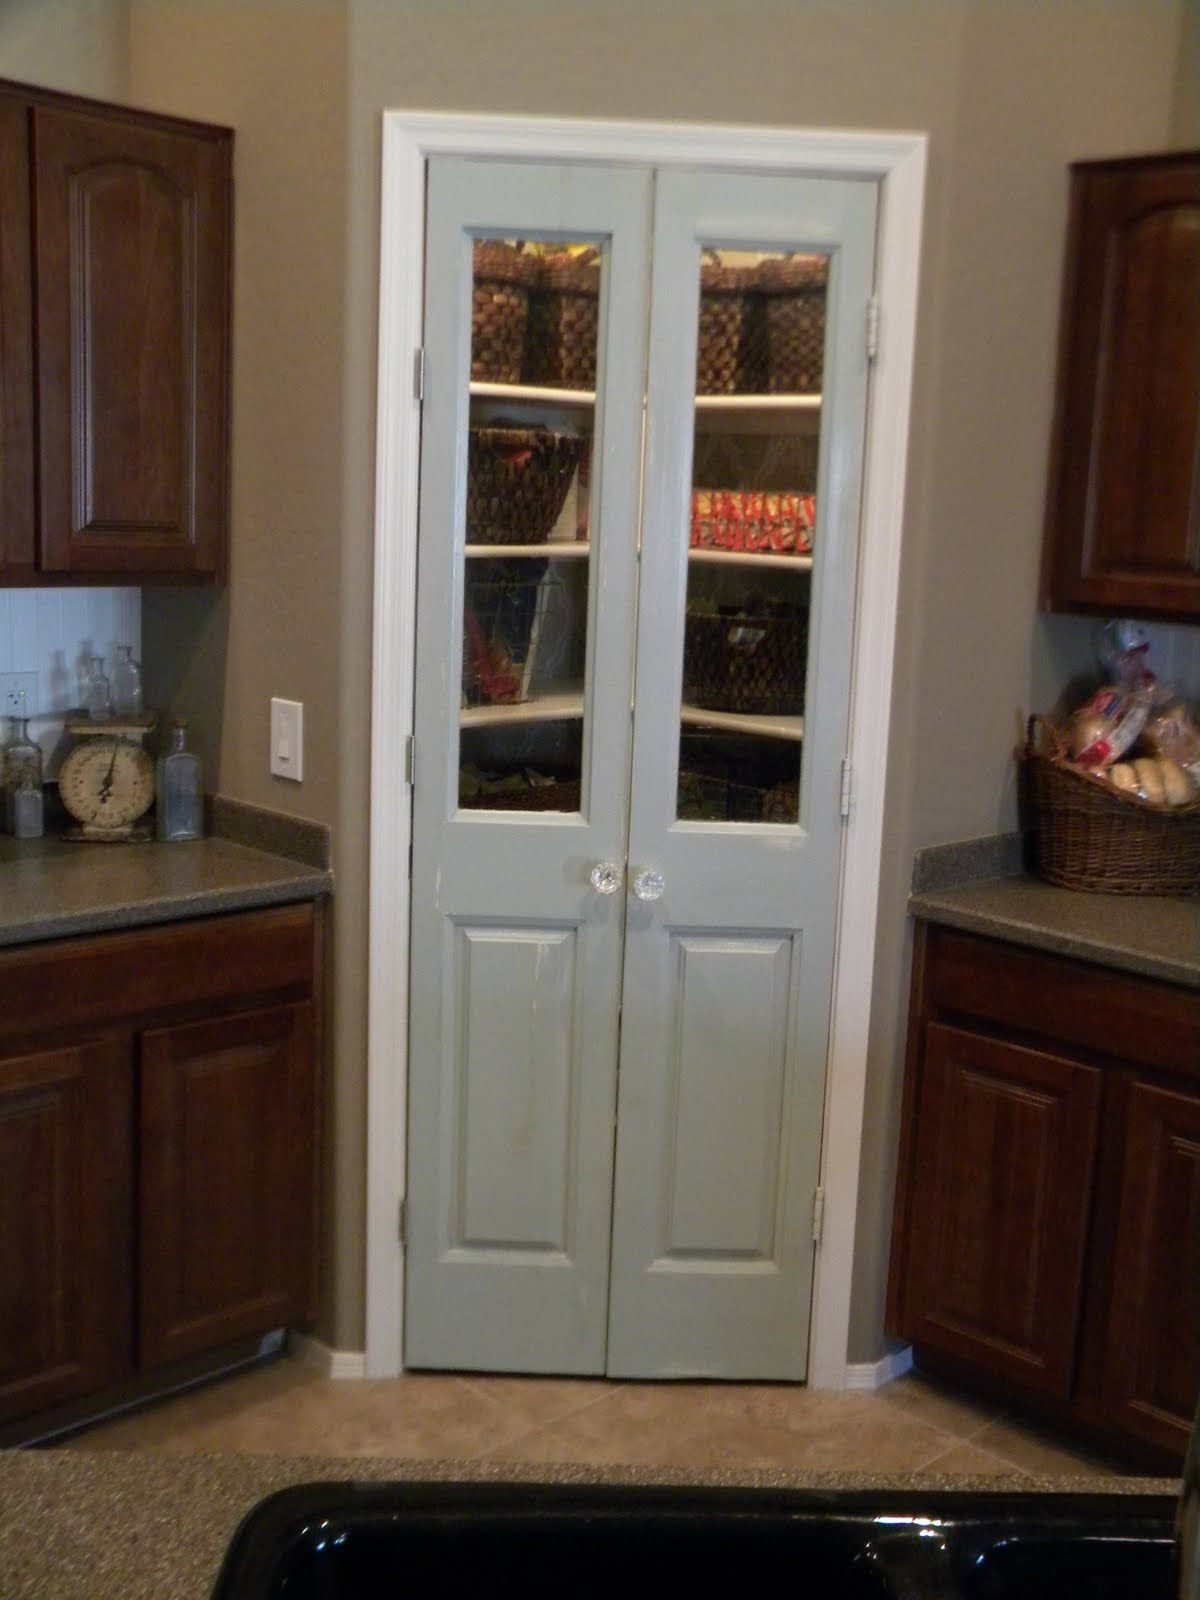 120 Reference Of Double Door Kitchen Bedroom In 2020 French Doors Interior Narrow French Doors Kitchen Pantry Doors